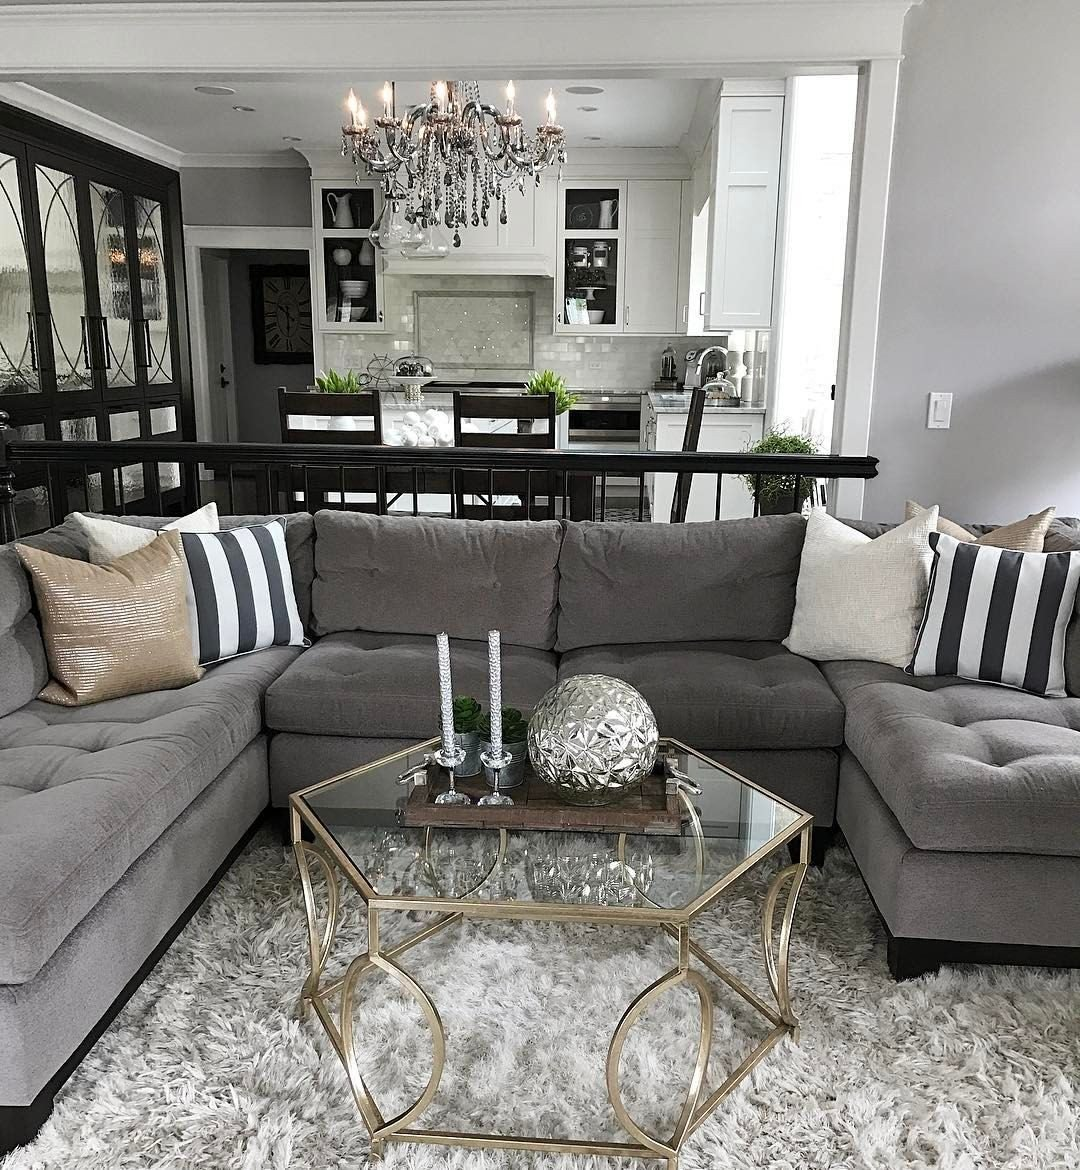 Gray sofa Living Room Decor Fresh Change Up the Gray Couch with and Chic Black and White Striped Accents